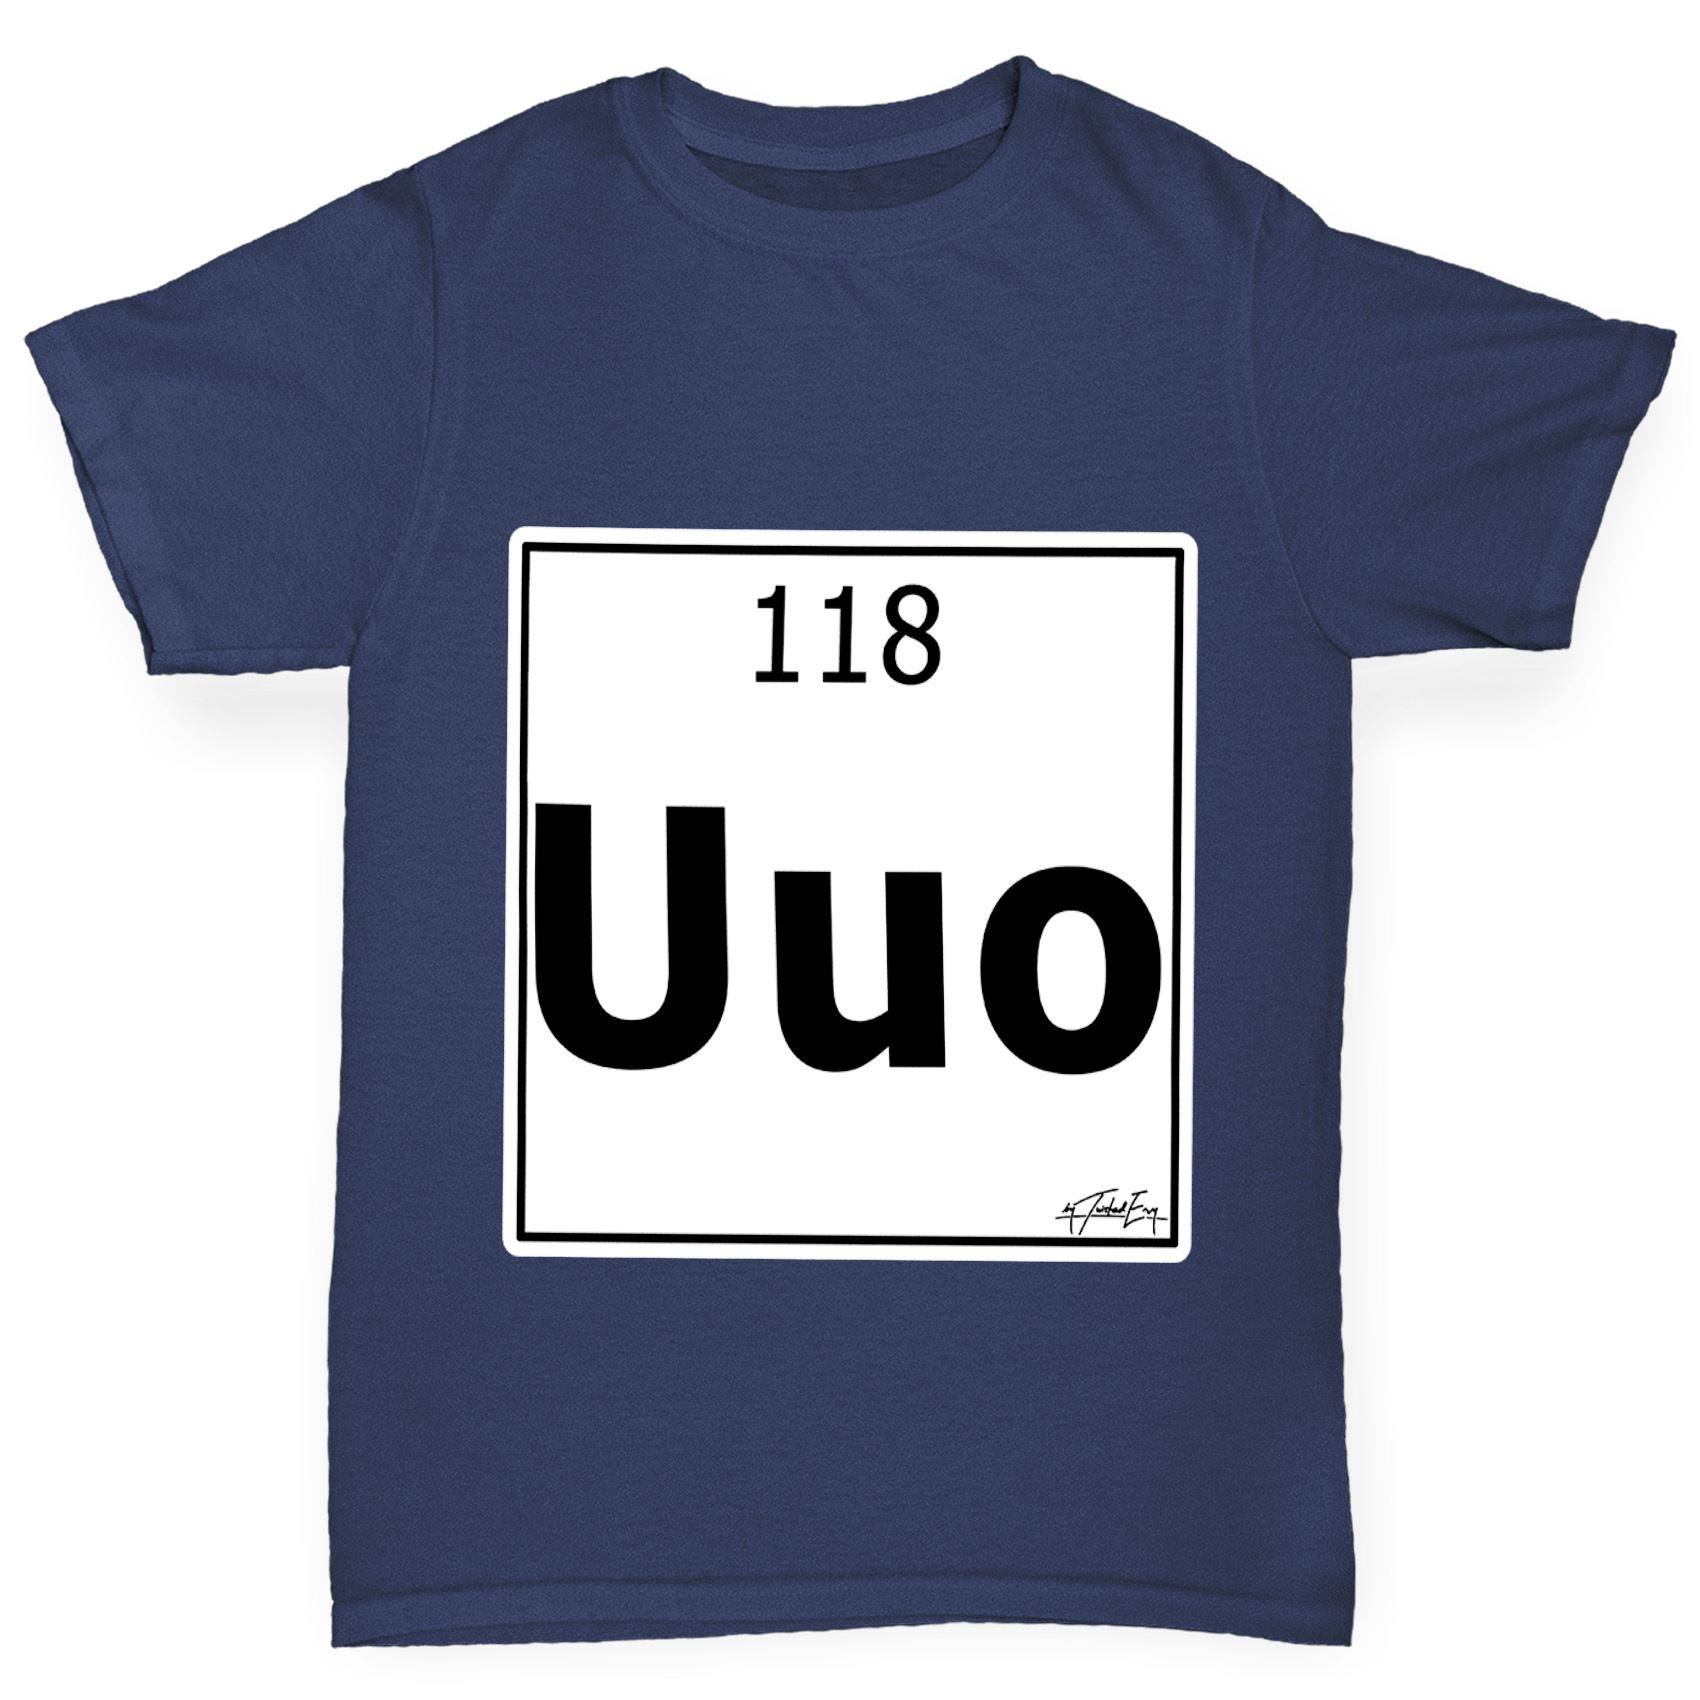 Twisted envy boys periodic table element uuo ununoctium t shirt ebay twisted envy boy 039 s periodic table element urtaz